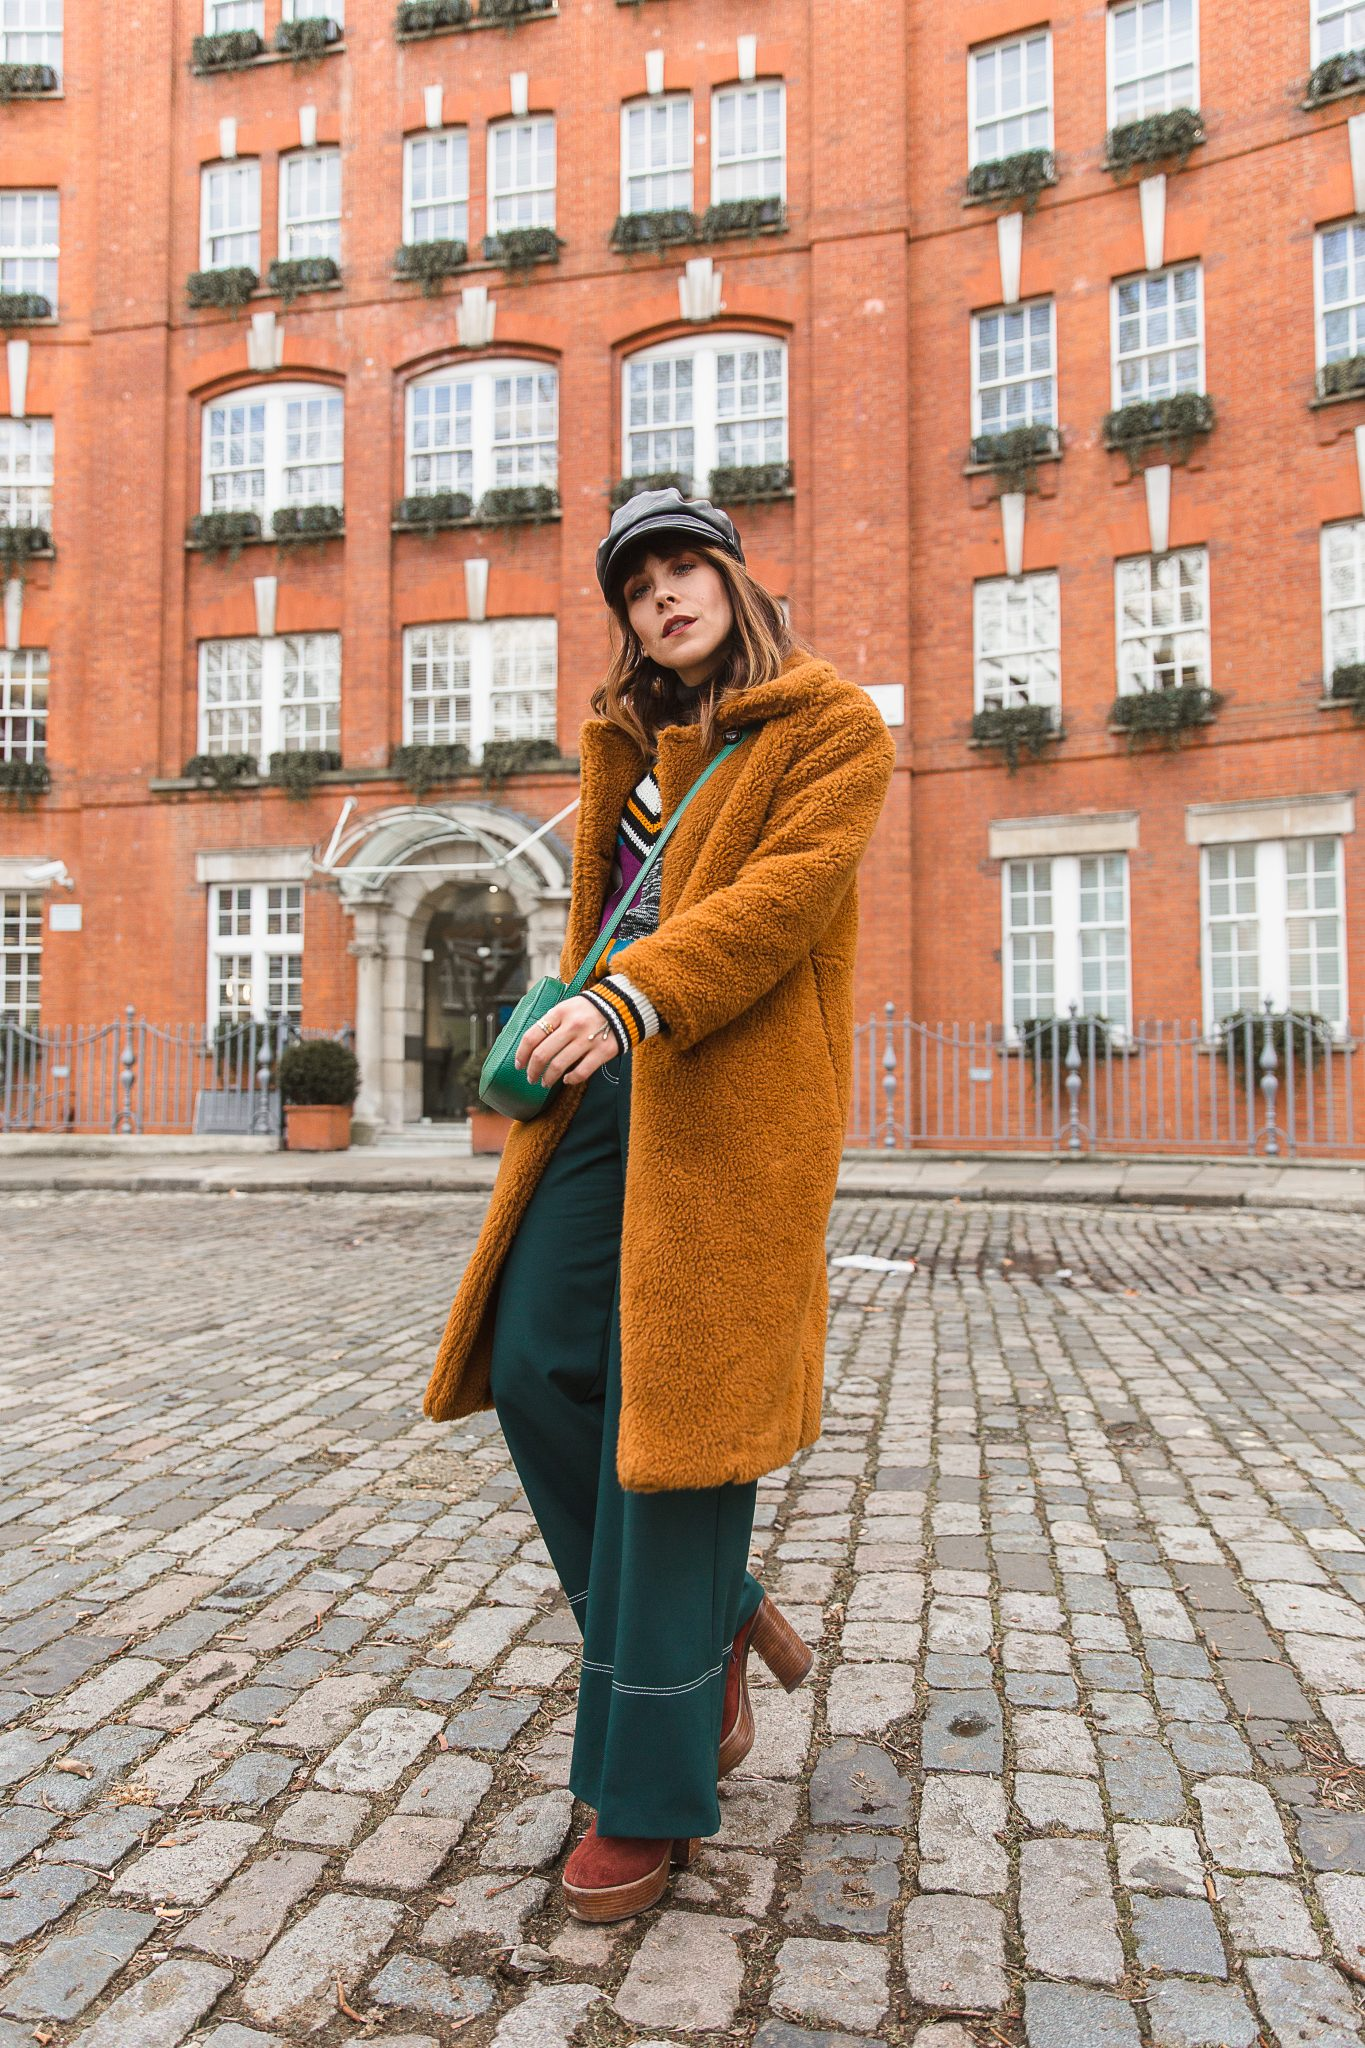 MEGAN ELLABY HOW TO WEAR A TEDDY COAT